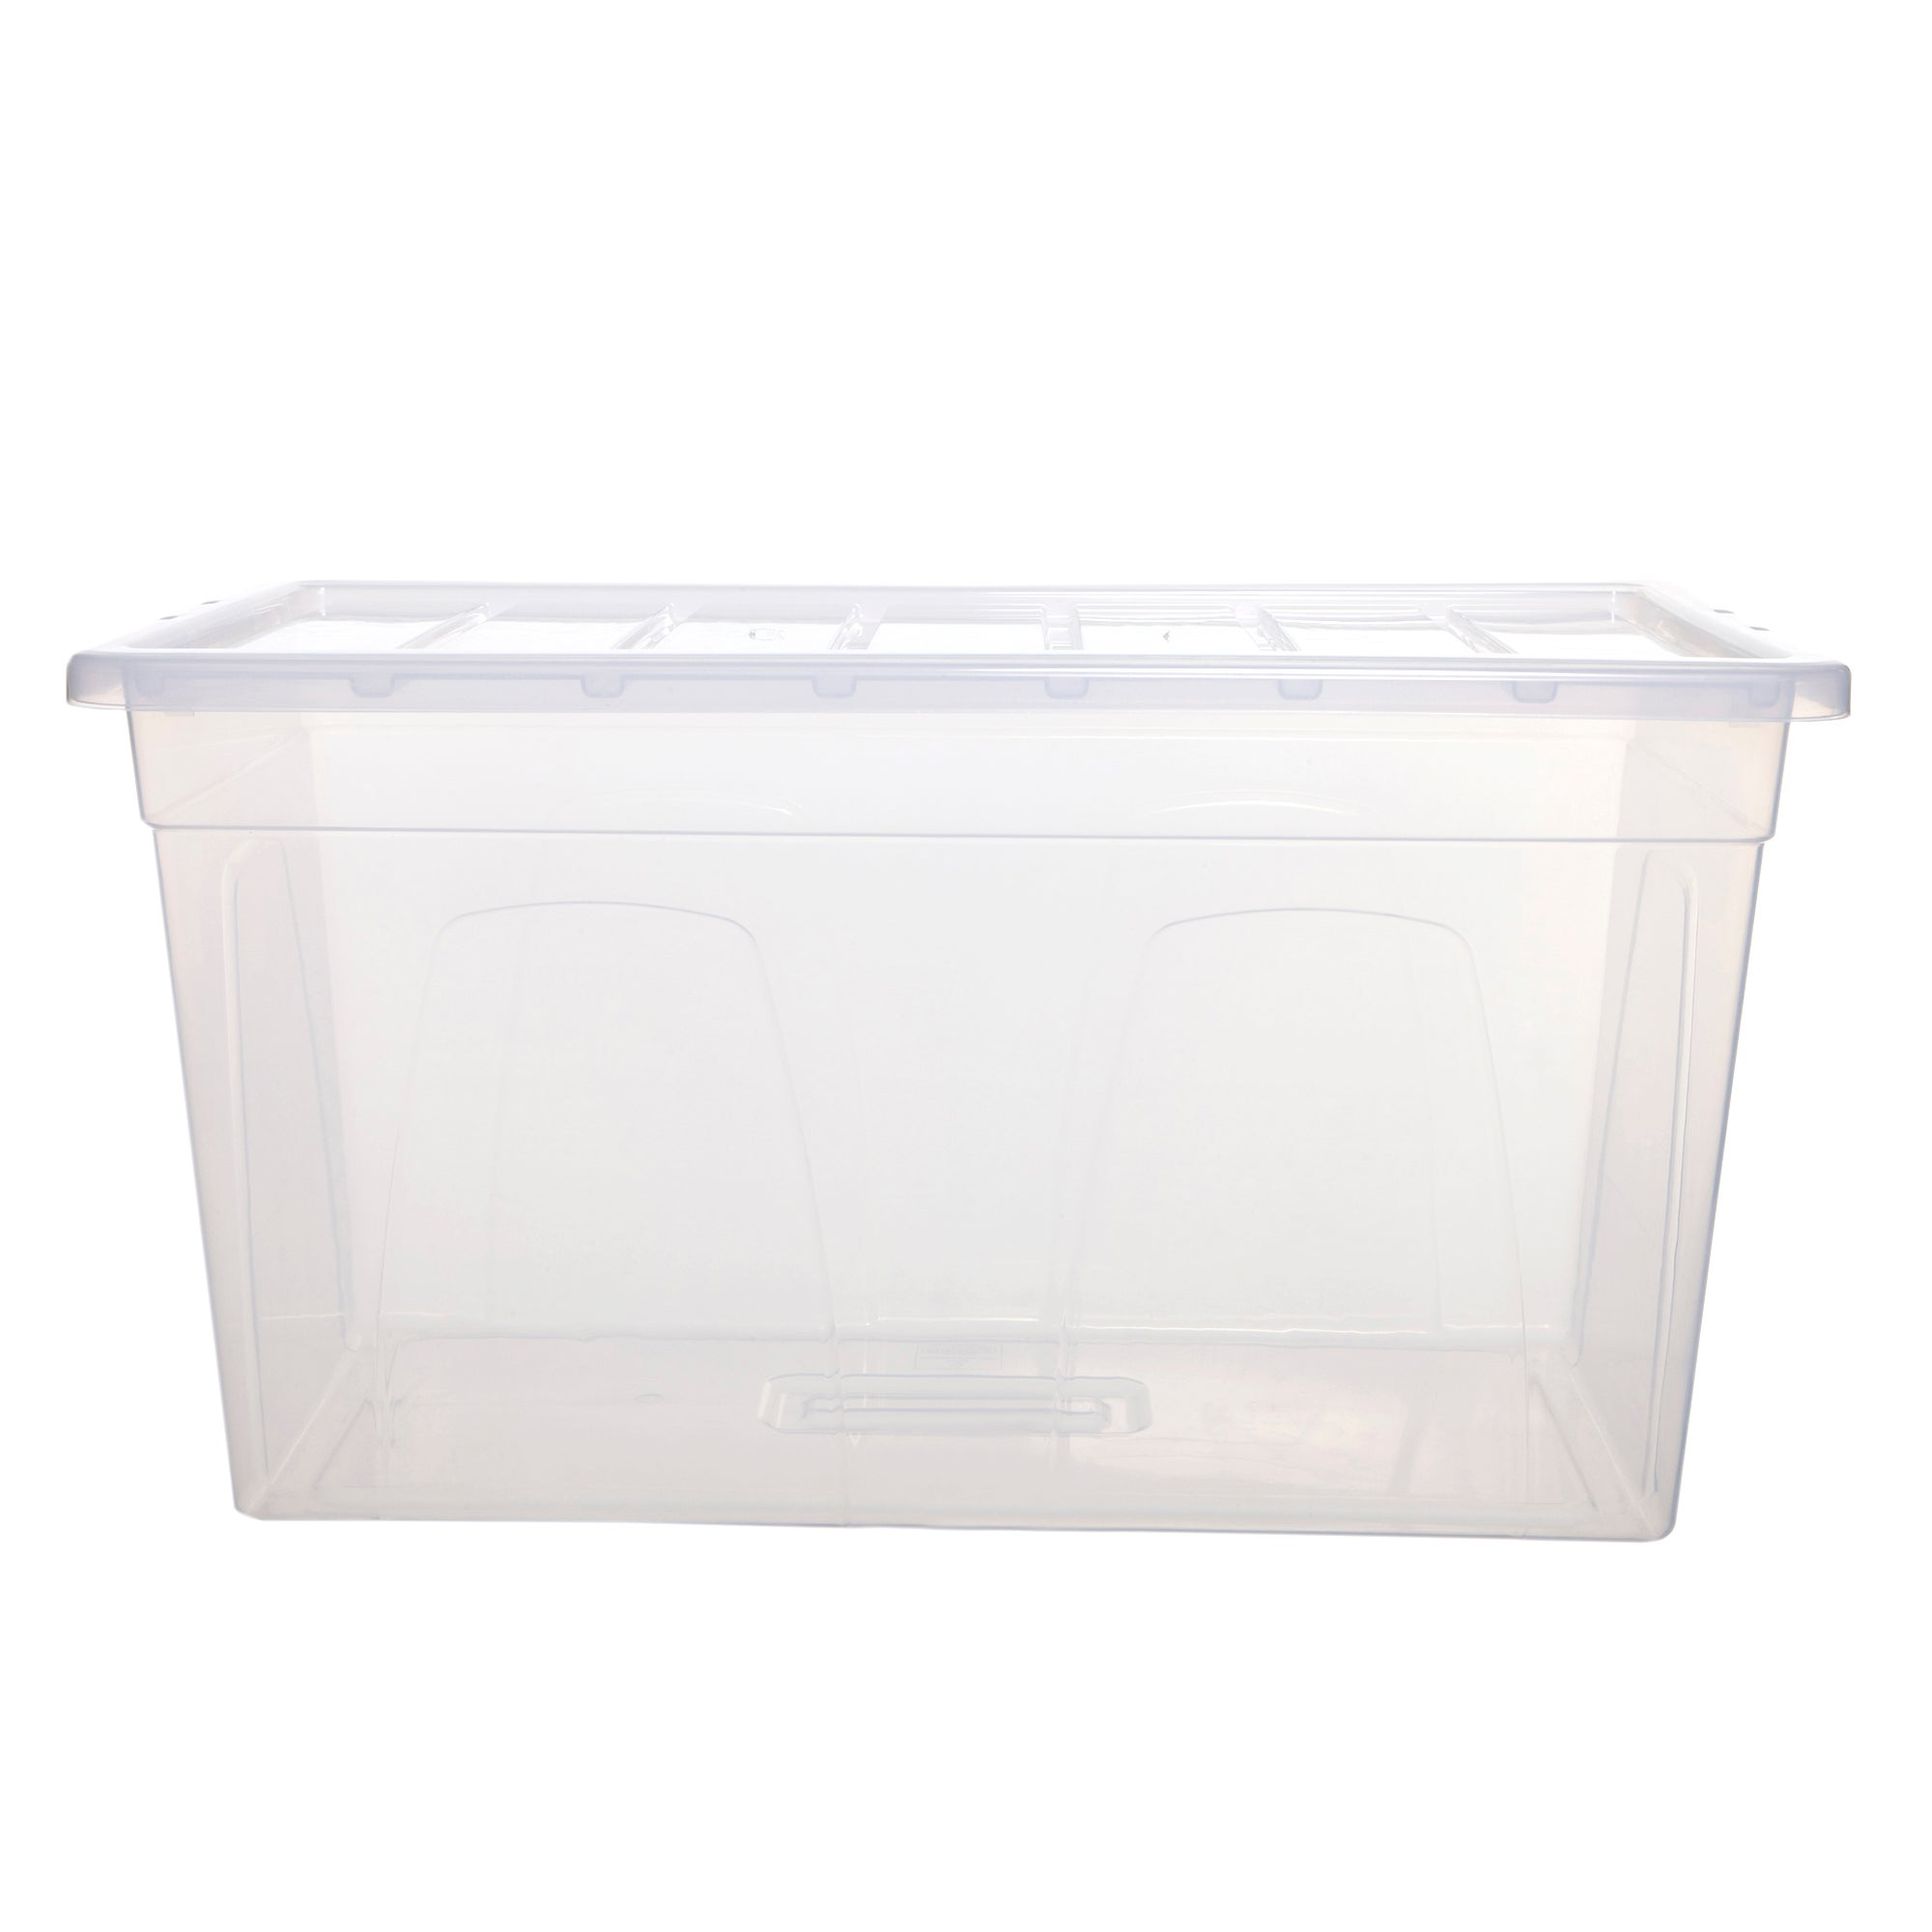 Spacemaster 100 Litre Storage Box Clear